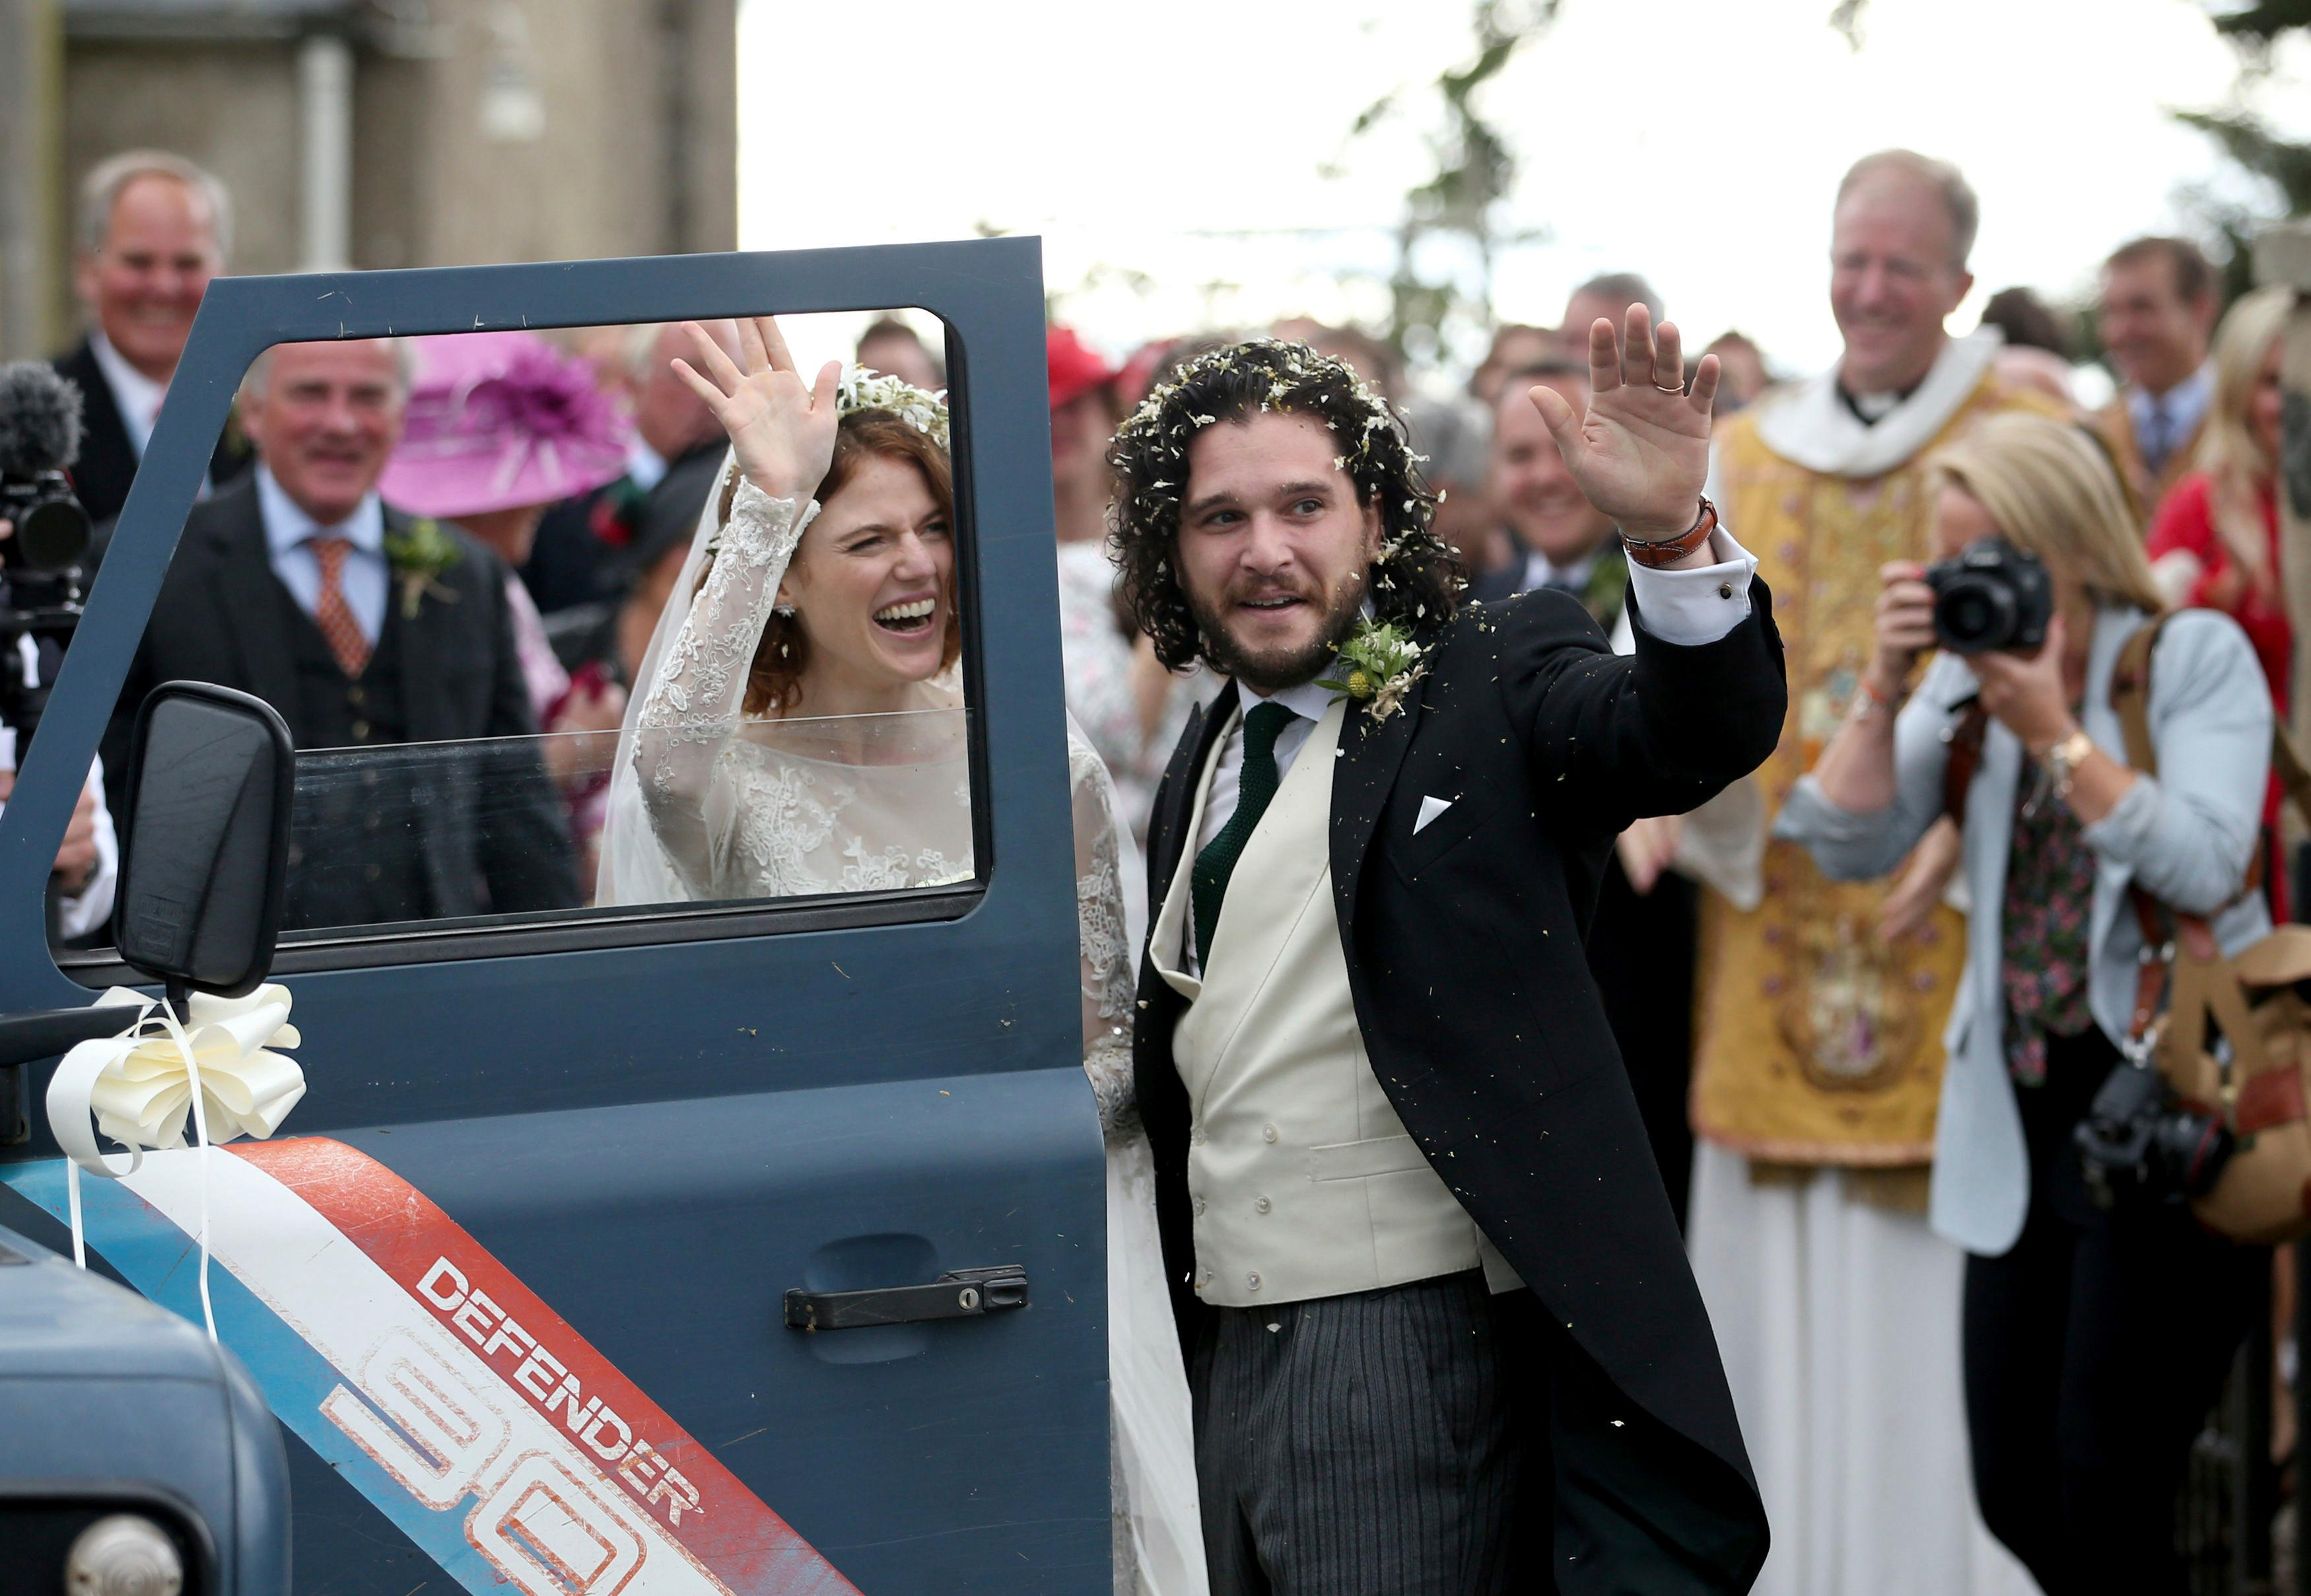 "Actors Kit Harington and Rose Leslie reacts as they leave after their wedding ceremony, at Rayne Church, Kirkton of Rayne in Aberdeenshire, Scotland, Saturday June 23, 2018. Former ""Game of Thrones"" co-stars Kiet Harington and Rose Leslie married near the bride's family castle in Scotland. The couple and guests arrived at Rayne Church, close to the 900-year-old Wardhill Castle in northeast Scotland, which is owned by Leslie's family. Harington, wearing a morning suit, and Leslie, in a flowing ivory gown, smiled at members of the public who had gathered outside the church. (Jane Barlow/PA via AP)"